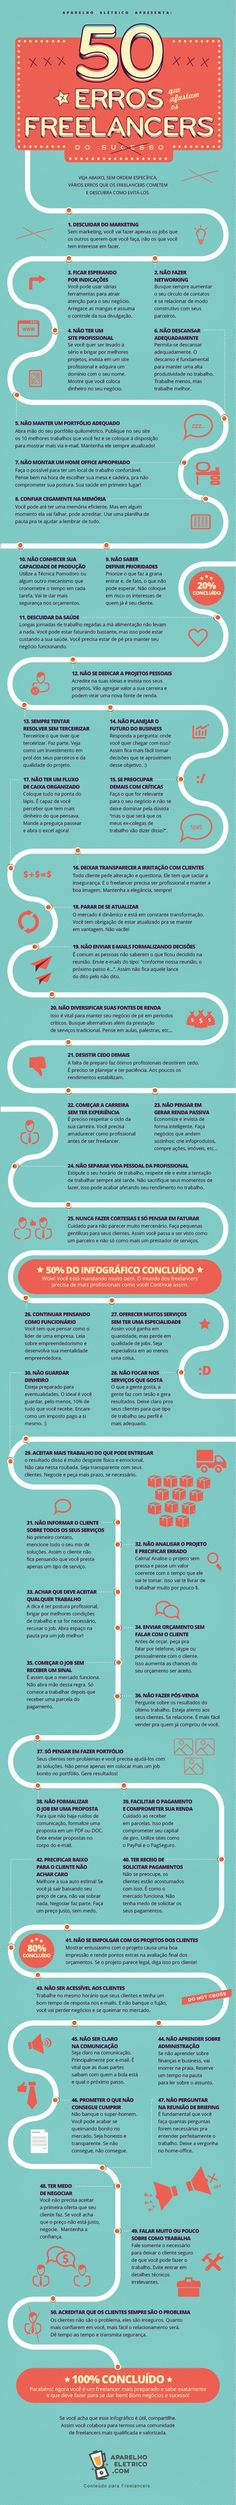 Infographic Design Inspiration - 50 erros que afastam os freelancers do sucesso - CoDesign Magazine Web Design, Graphic Design Tips, Marketing Digital, Design Theory, Success, Design Thinking, Web Development, Knowledge, Typography